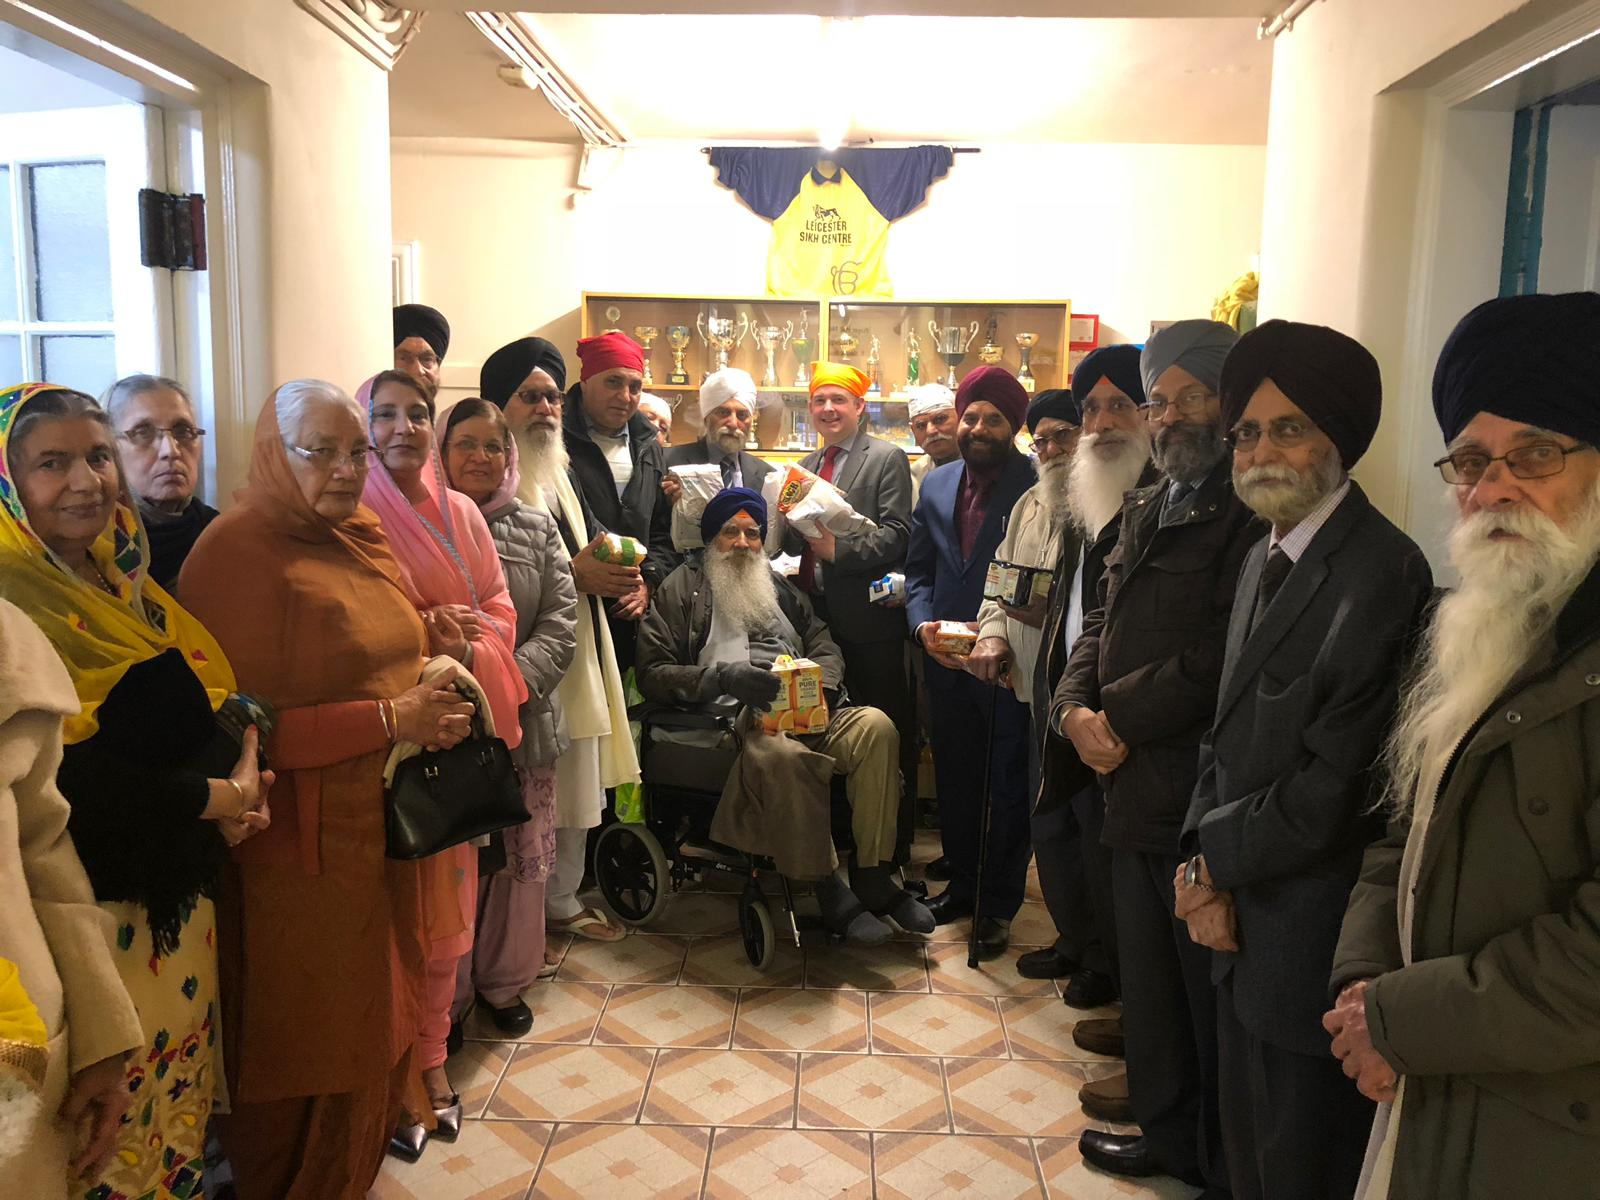 Jon Ashworth, along with Councillor Gugnani, accepts the generous donation to the Highfields Food Bank from Guru Amar Das Gurdwara - Friday November 23 2018